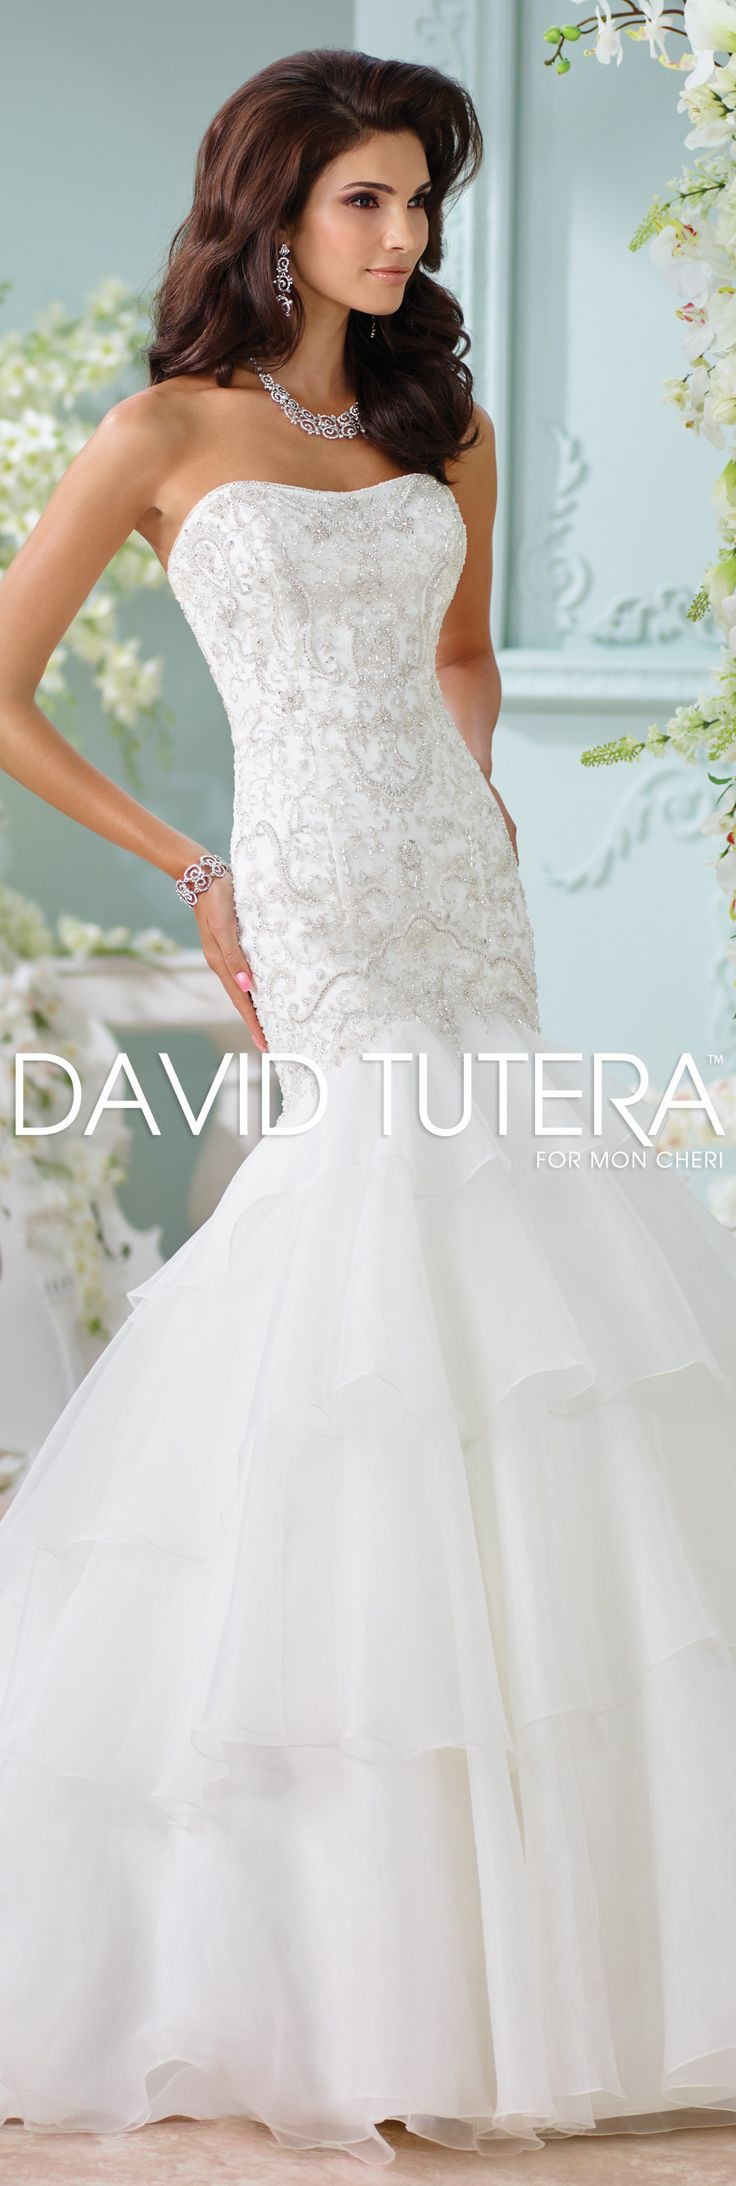 1000 images about embellish jewelry with david tutera for for David tutera wedding jewelry collection